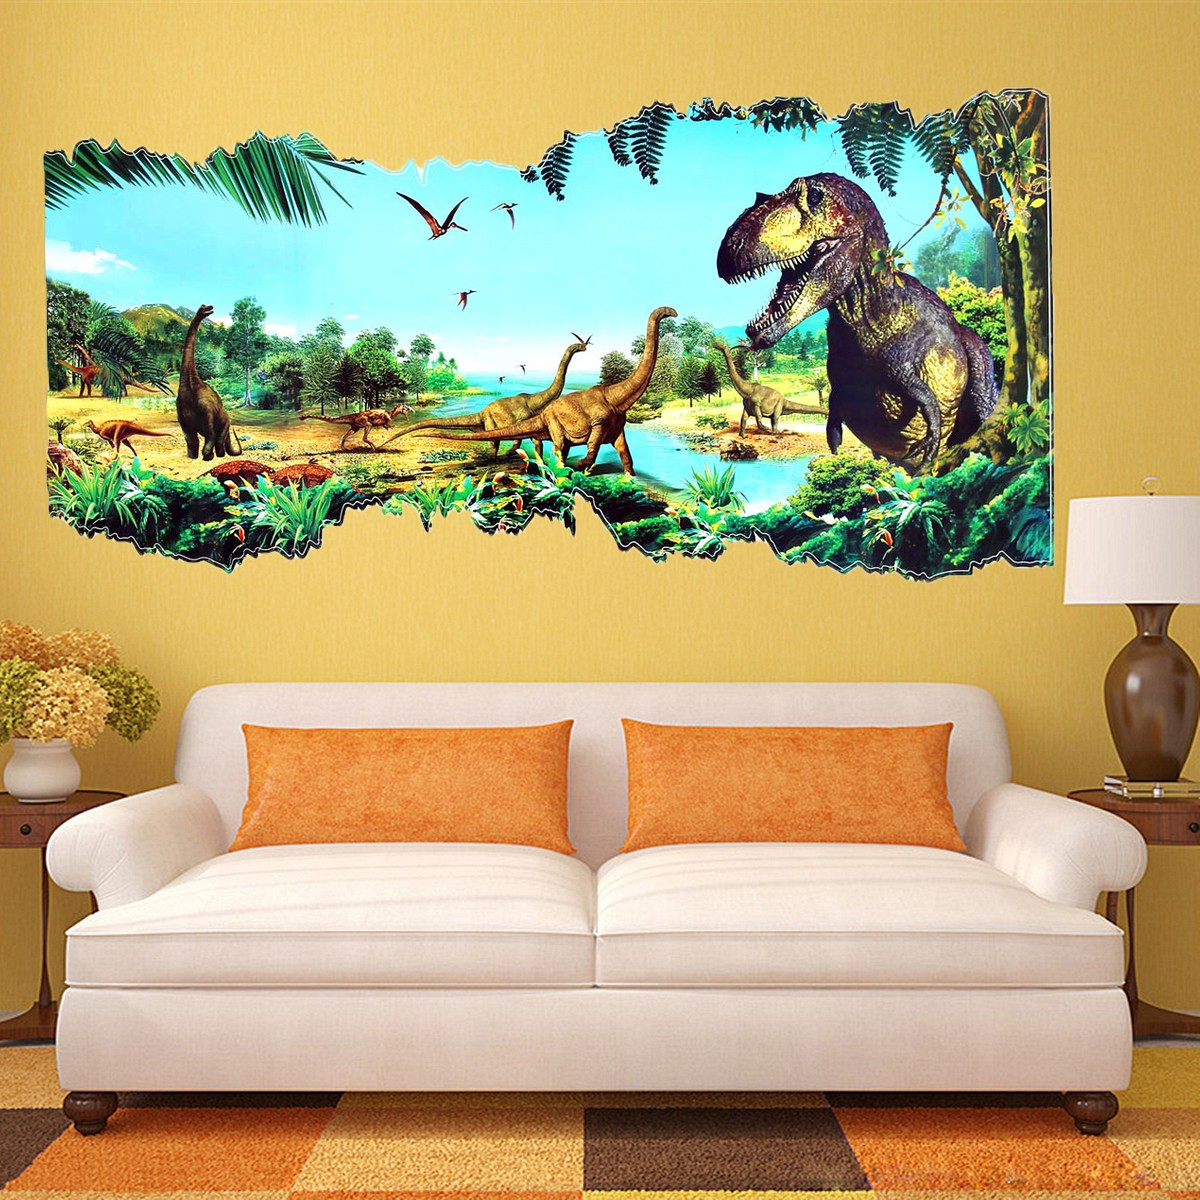 3d View Dinosaur Kids Room Decor Jurassic Park Wall Sticker Decal ...